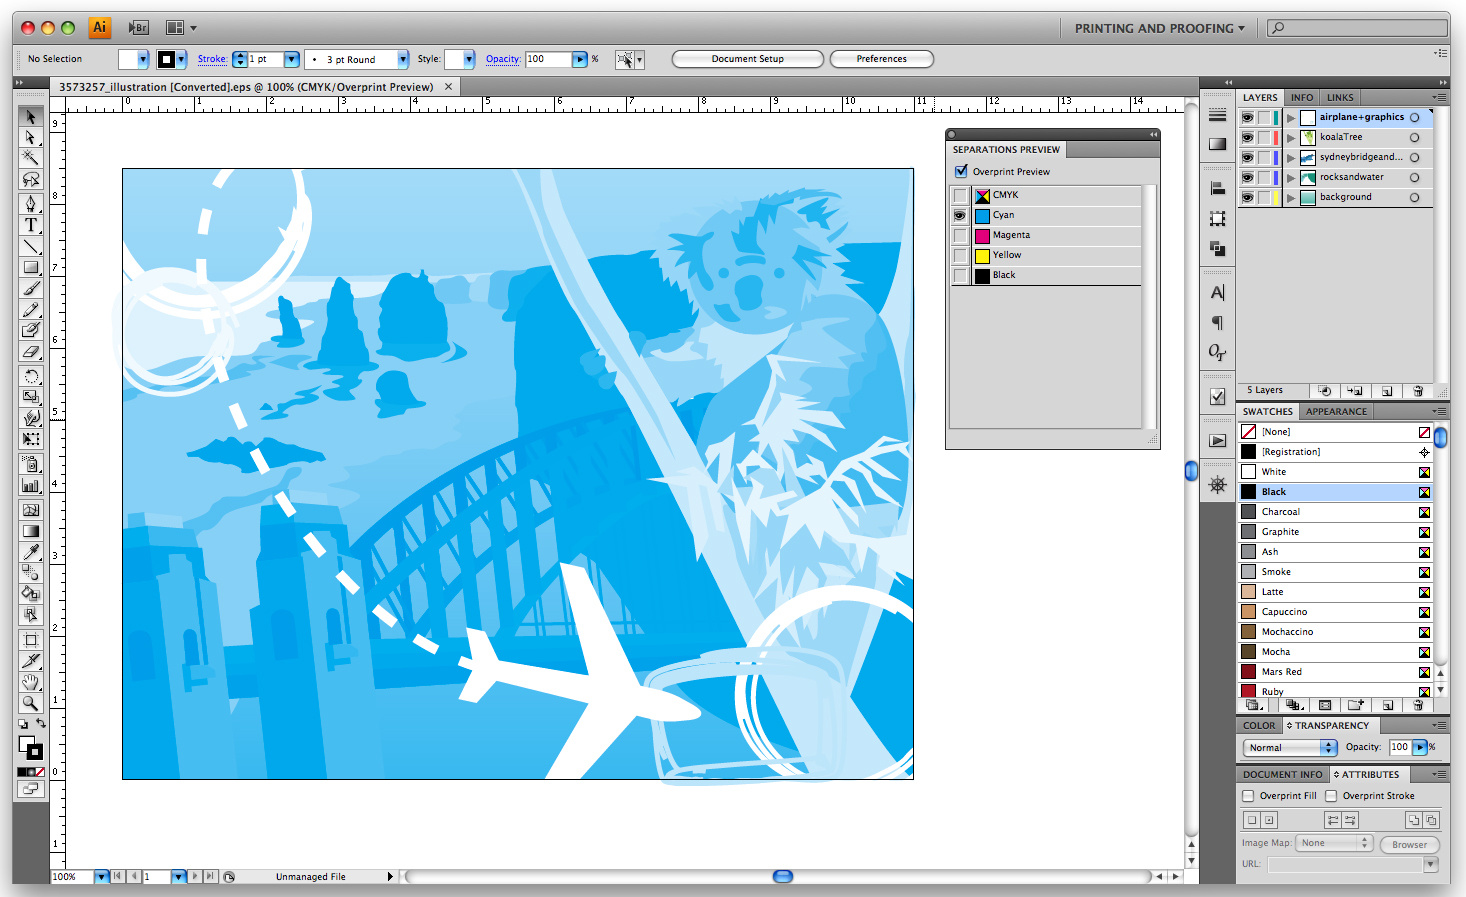 Adobe Illustrator CS4 for Windows